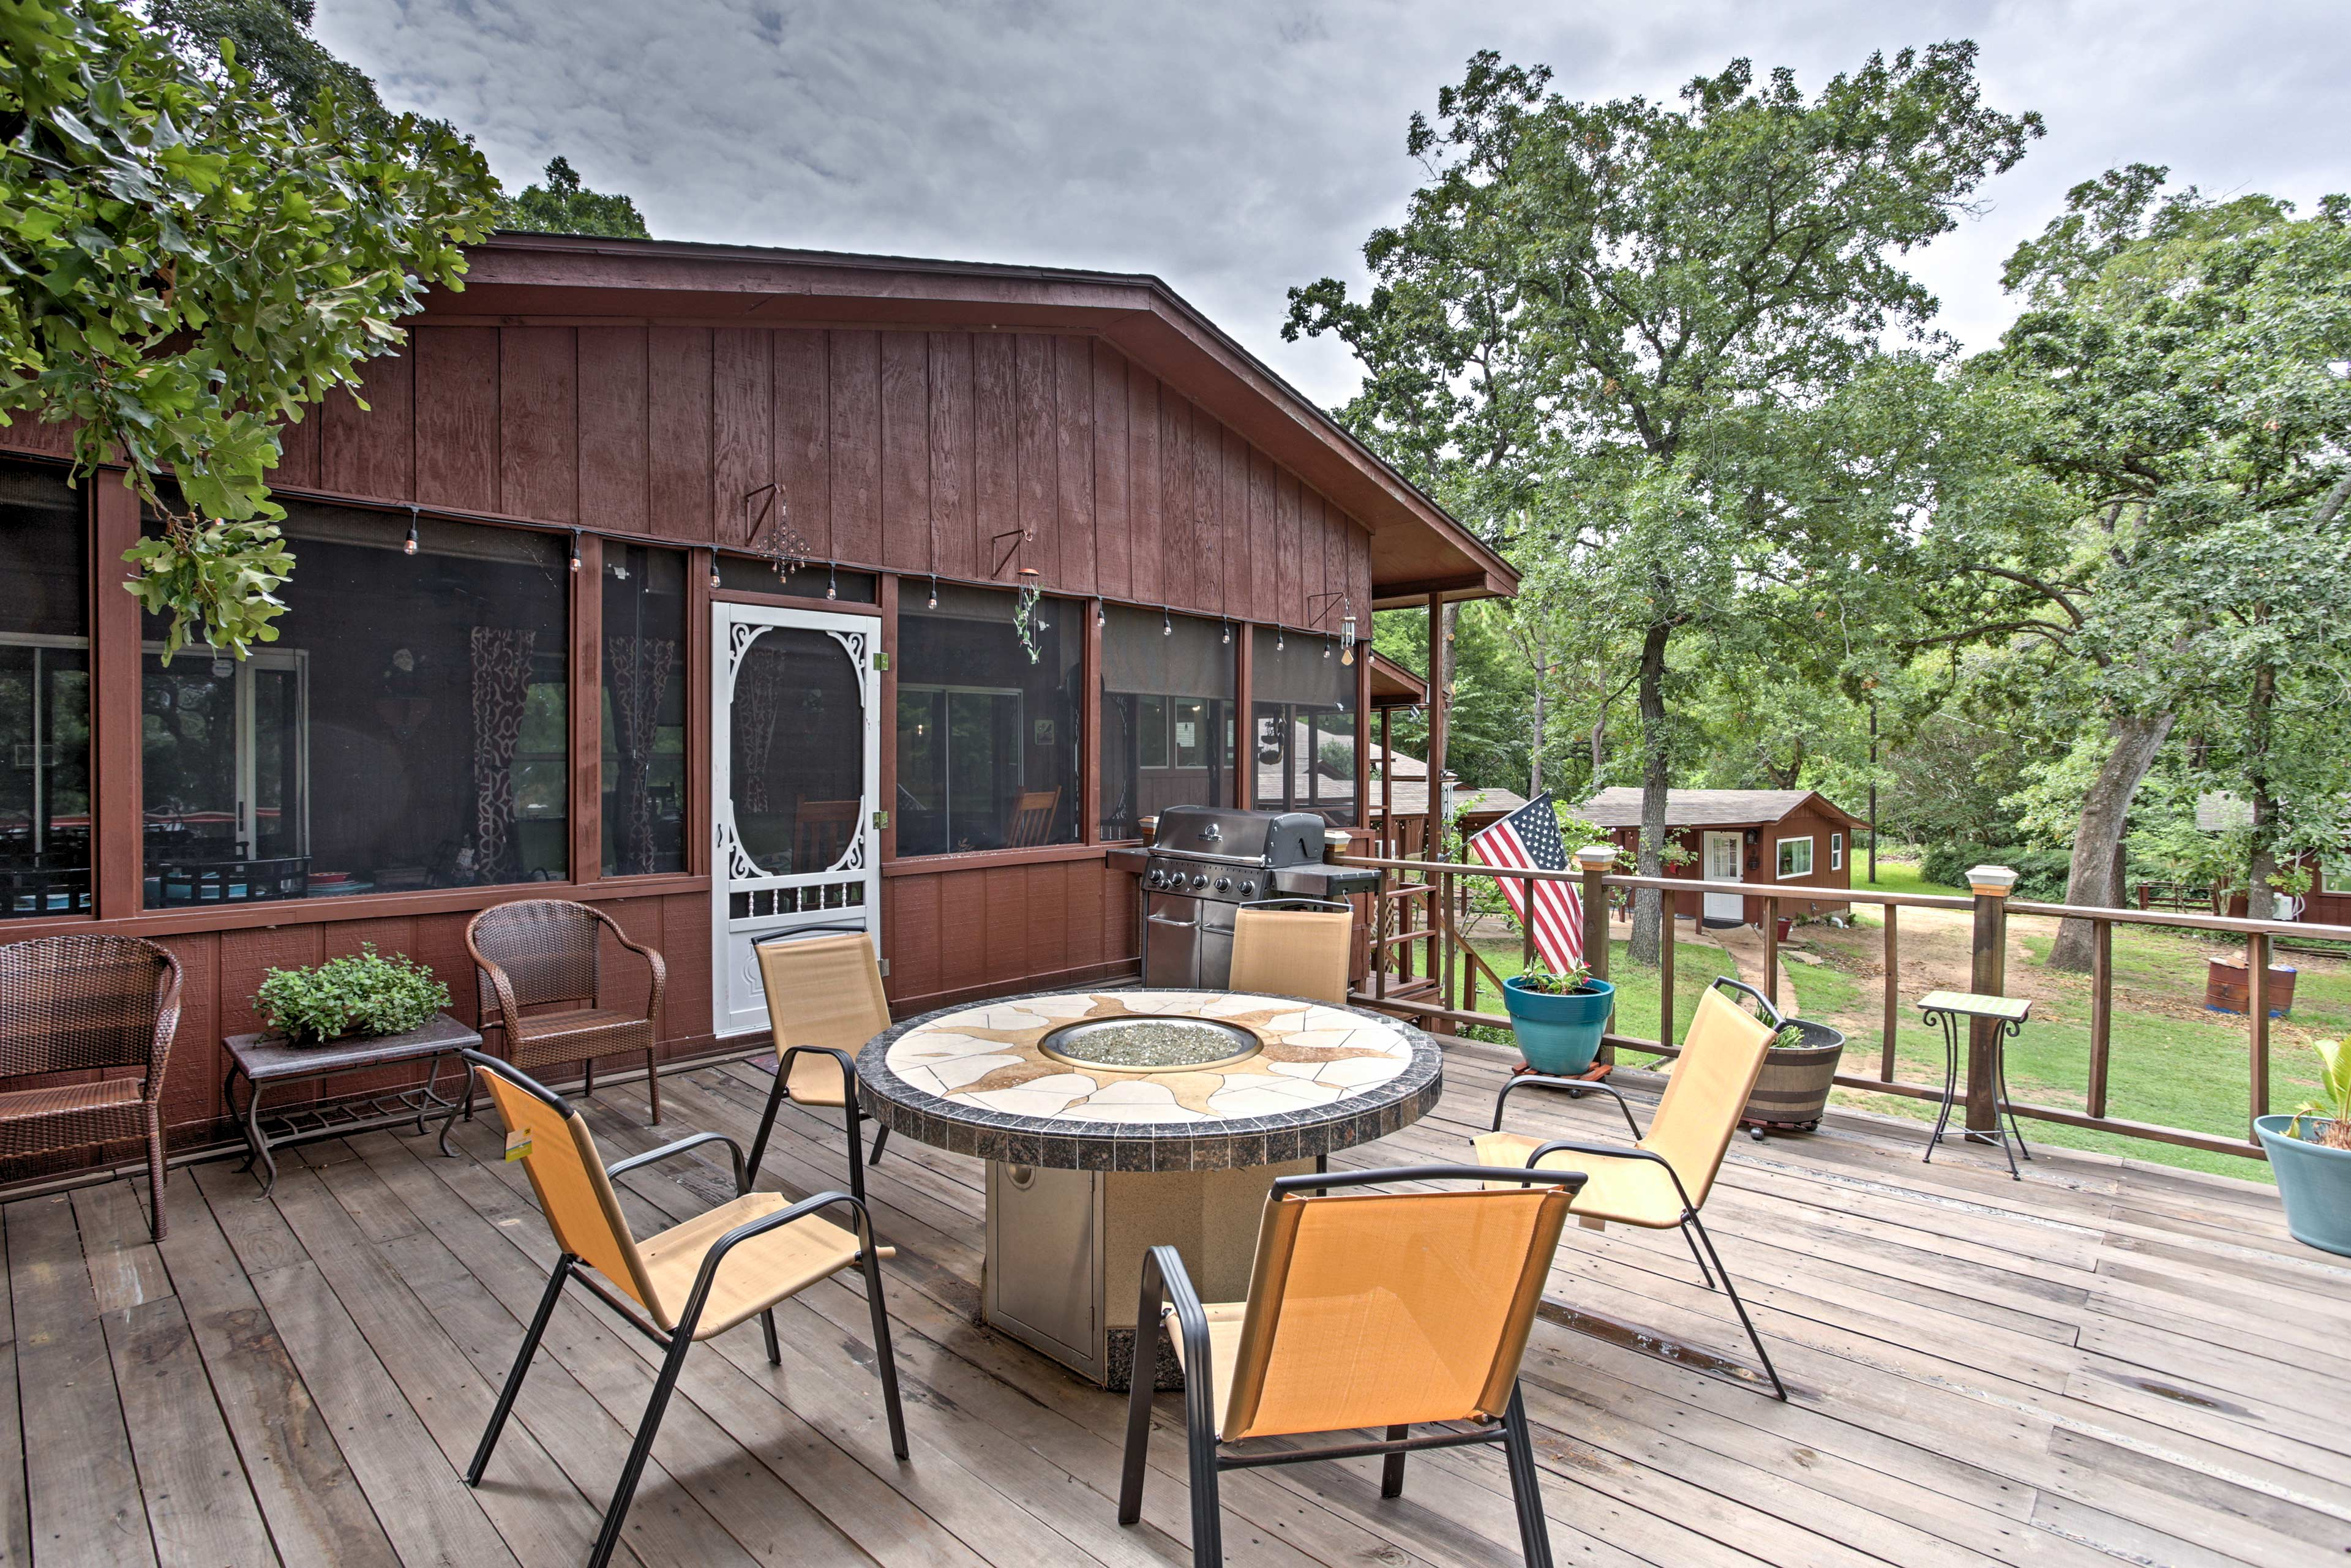 Enjoy evenings around the fire pit on the spacious deck.